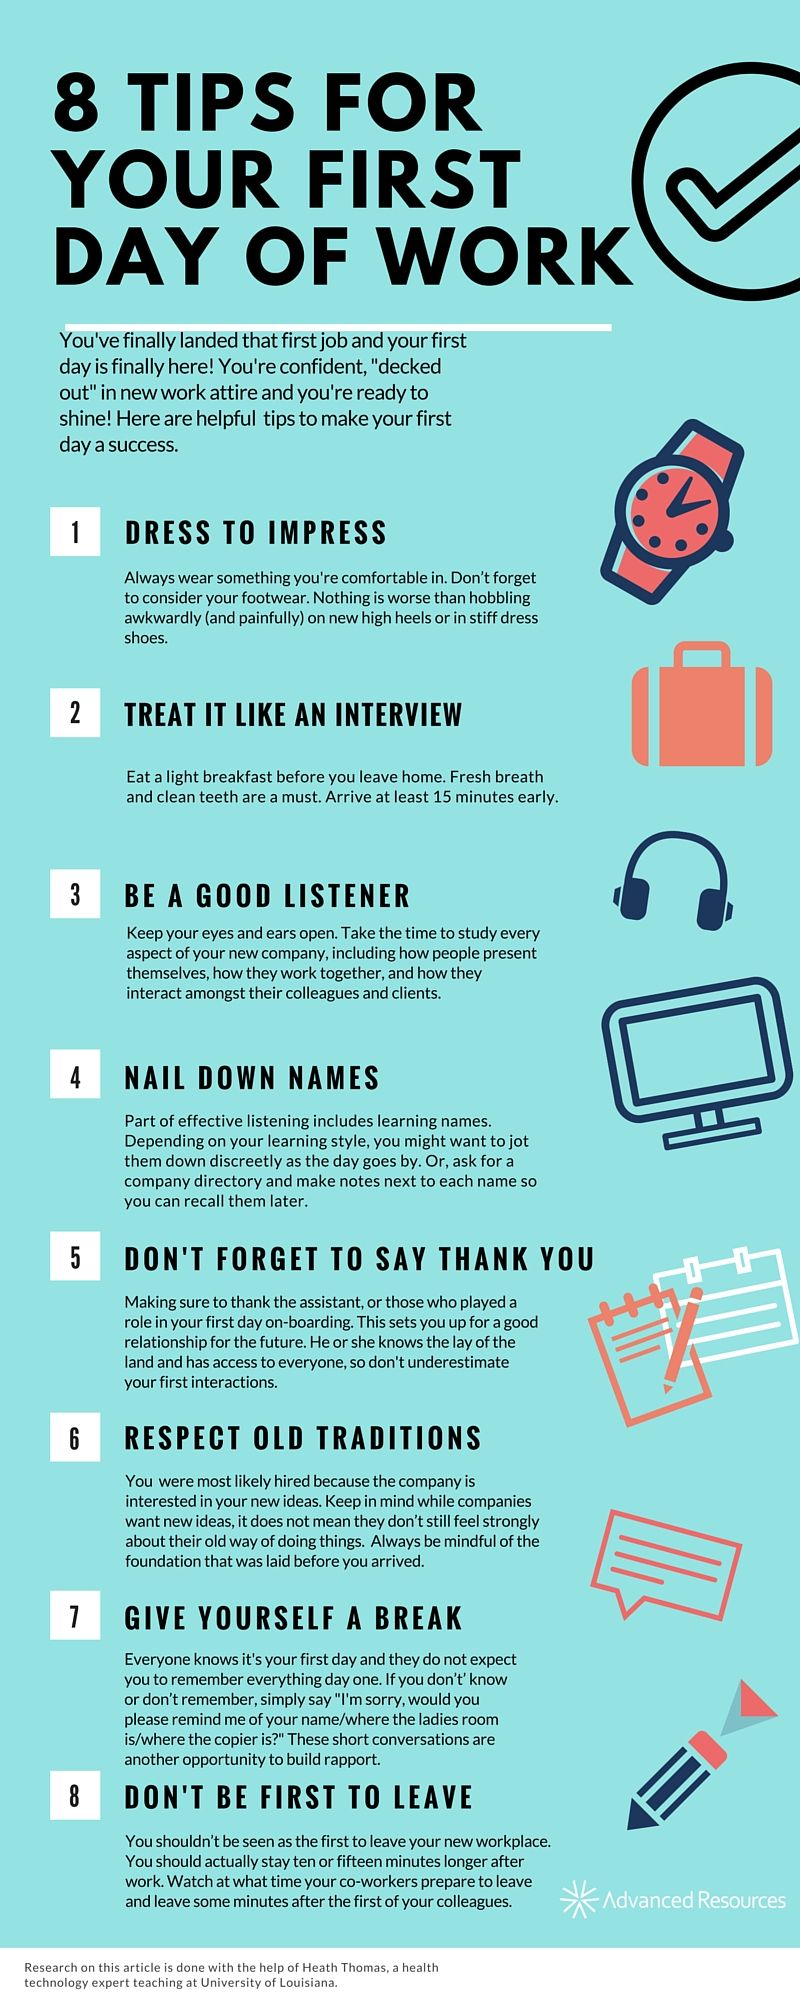 8 Tips For Your First Day Of Work First Day Of Work First Day New Job First Job Tips